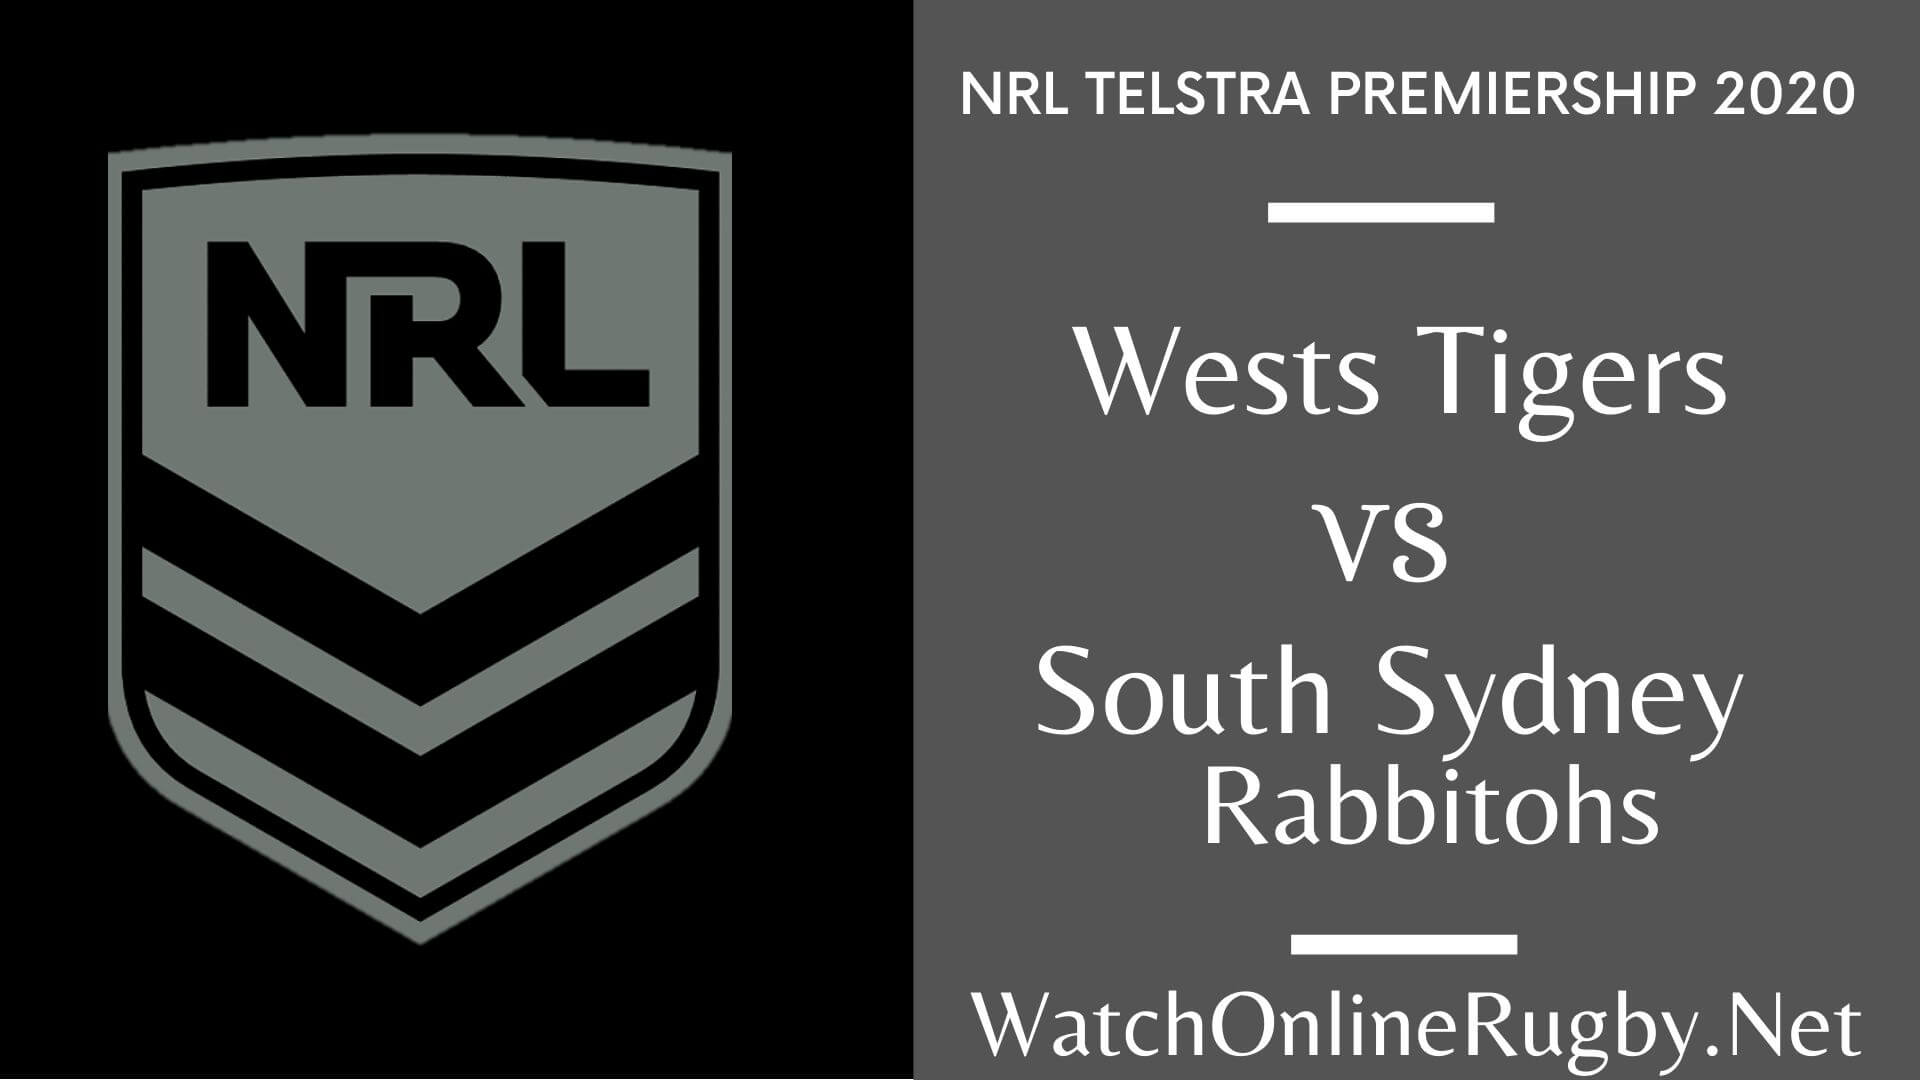 Rabbitohs Vs Wests Tigers Highlights 2020 Round 9 Nrl Rugby